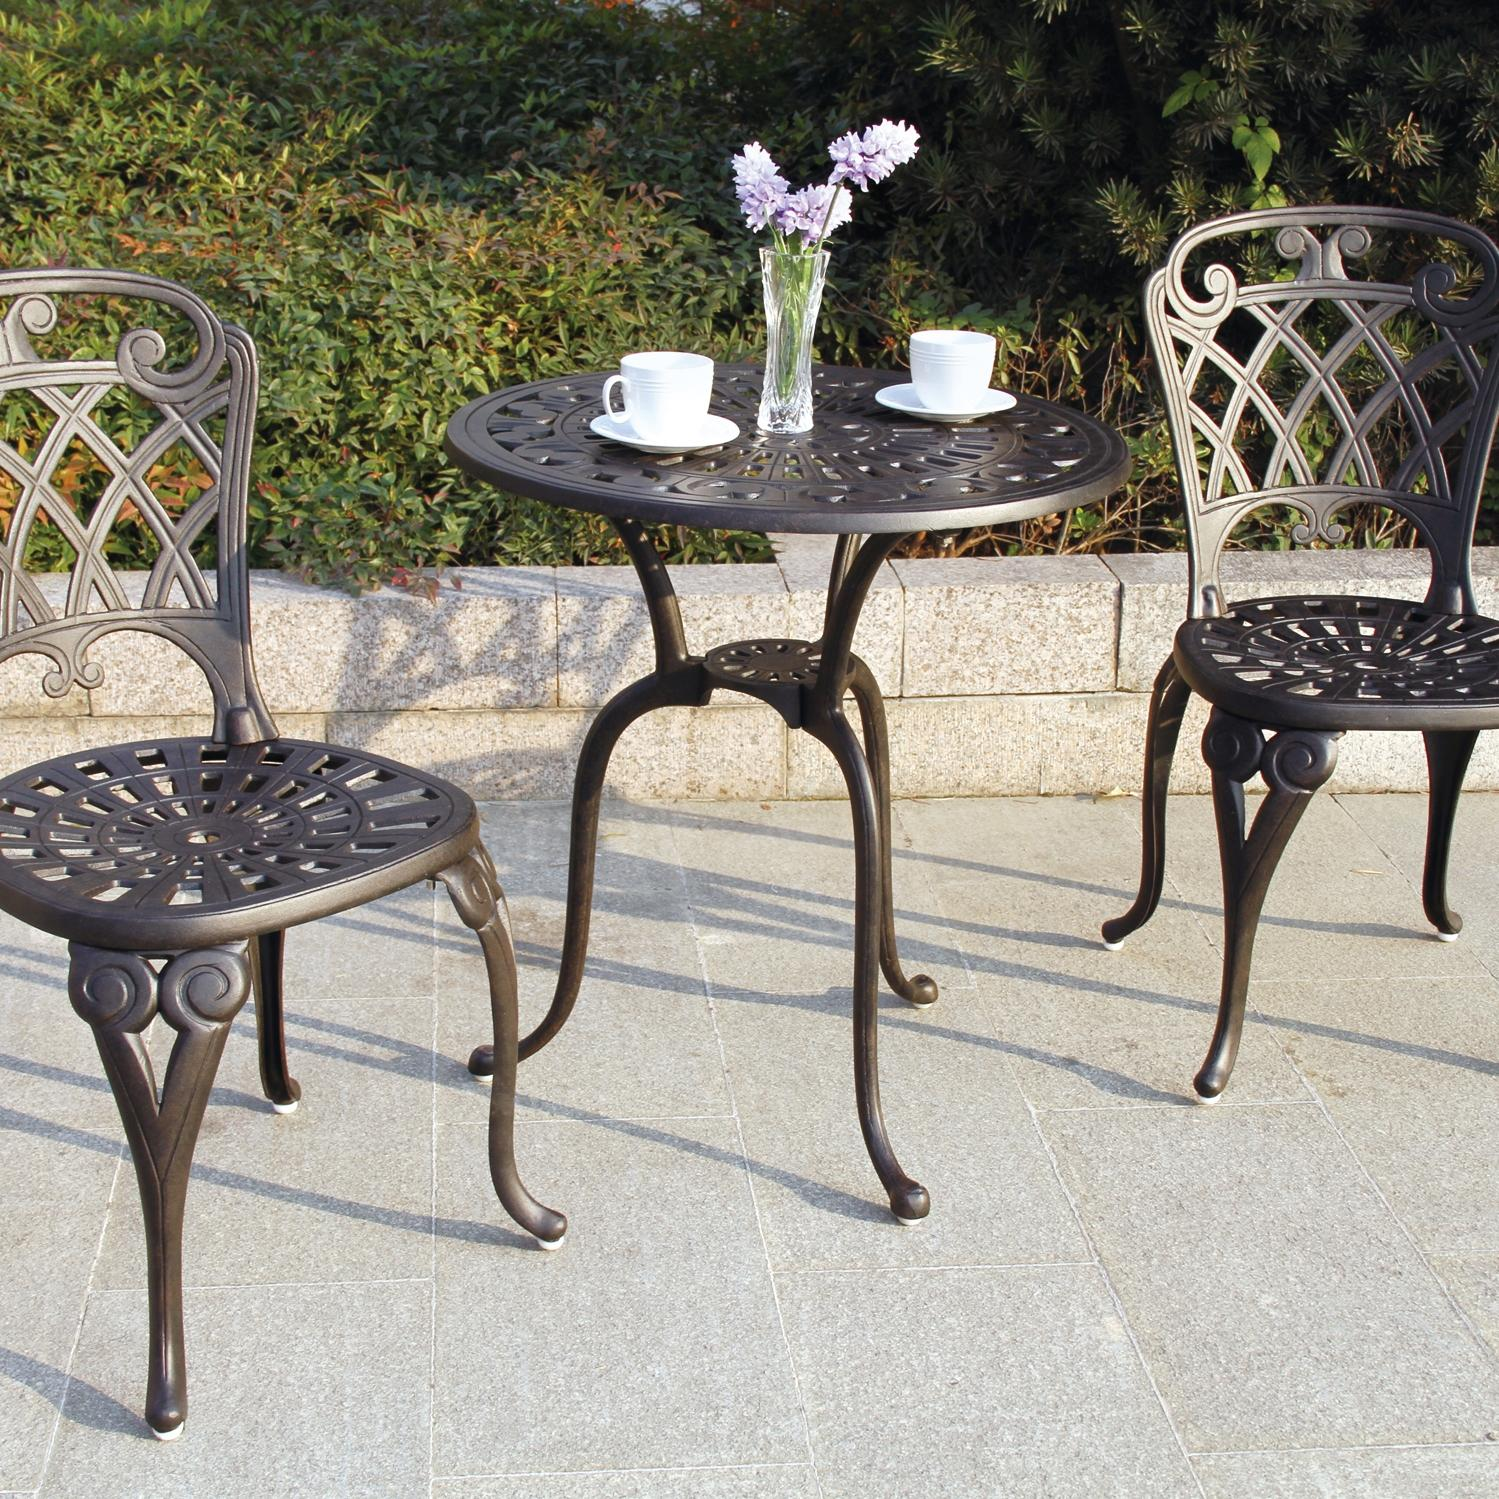 Darlee San Marino 2-person Cast Aluminum Patio Bistro Set - Antique Bronze at Sears.com